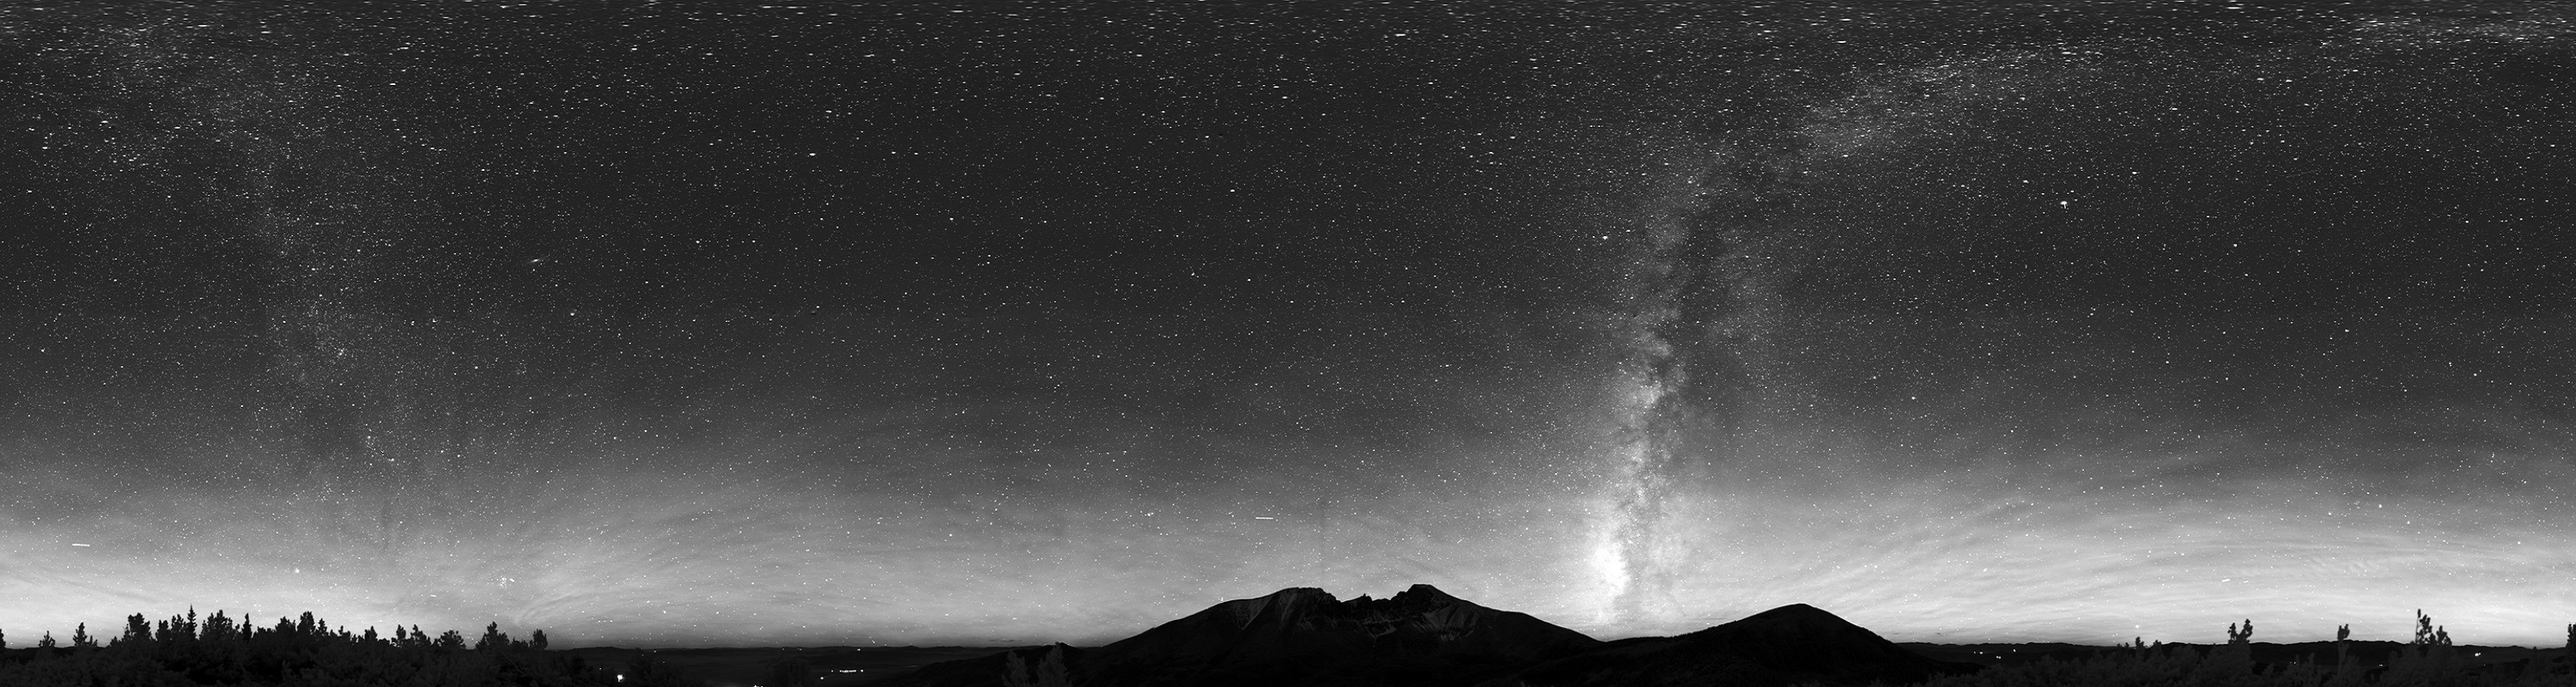 Nevada Slot Machine Casino Gambling and the Nevada starry night sky.